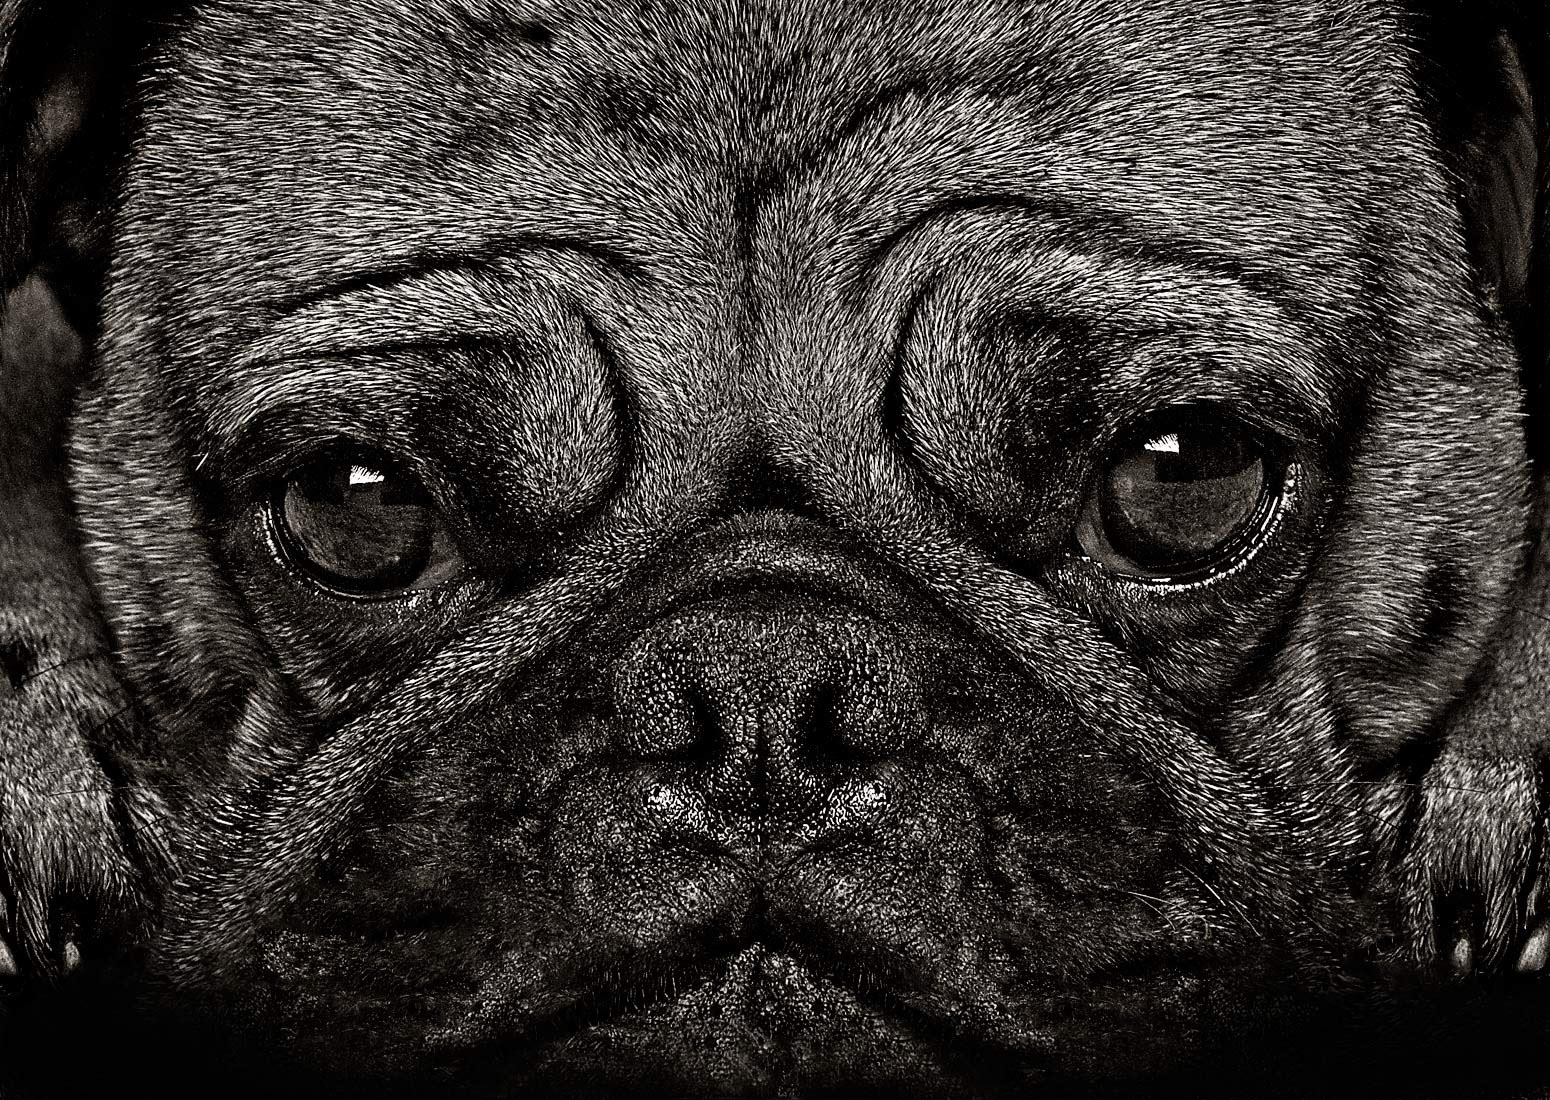 Dog portrait photography by Vancouver portrait photographer Waldy Martens